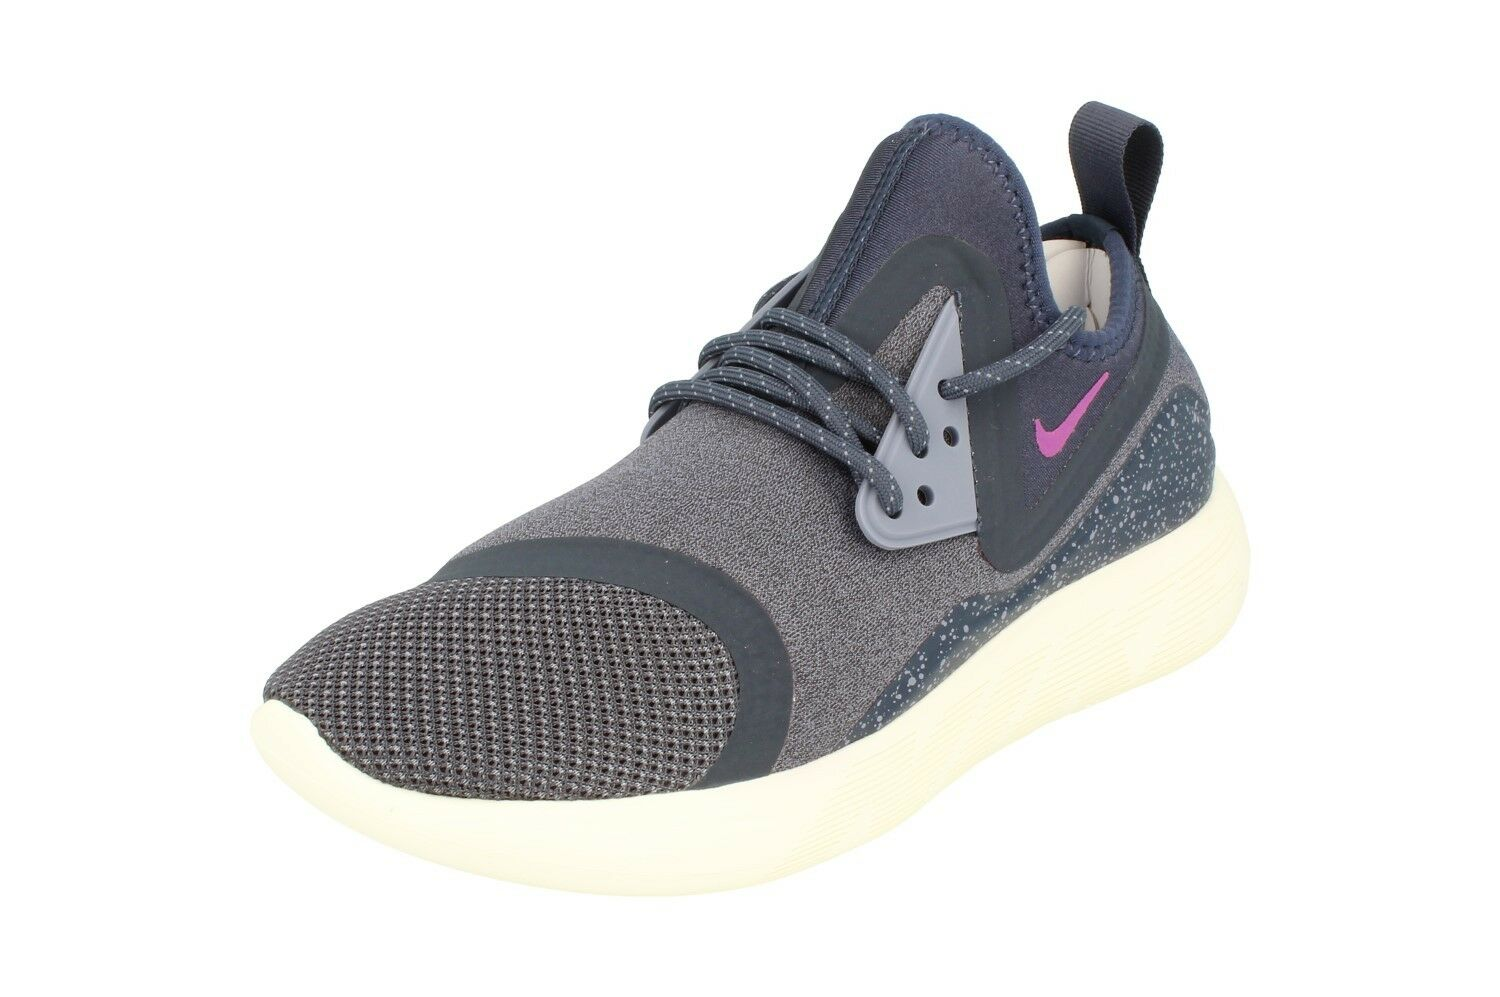 Nike Womens Lunarcharge Essential Running Trainers 923620 Sneakers shoes 405